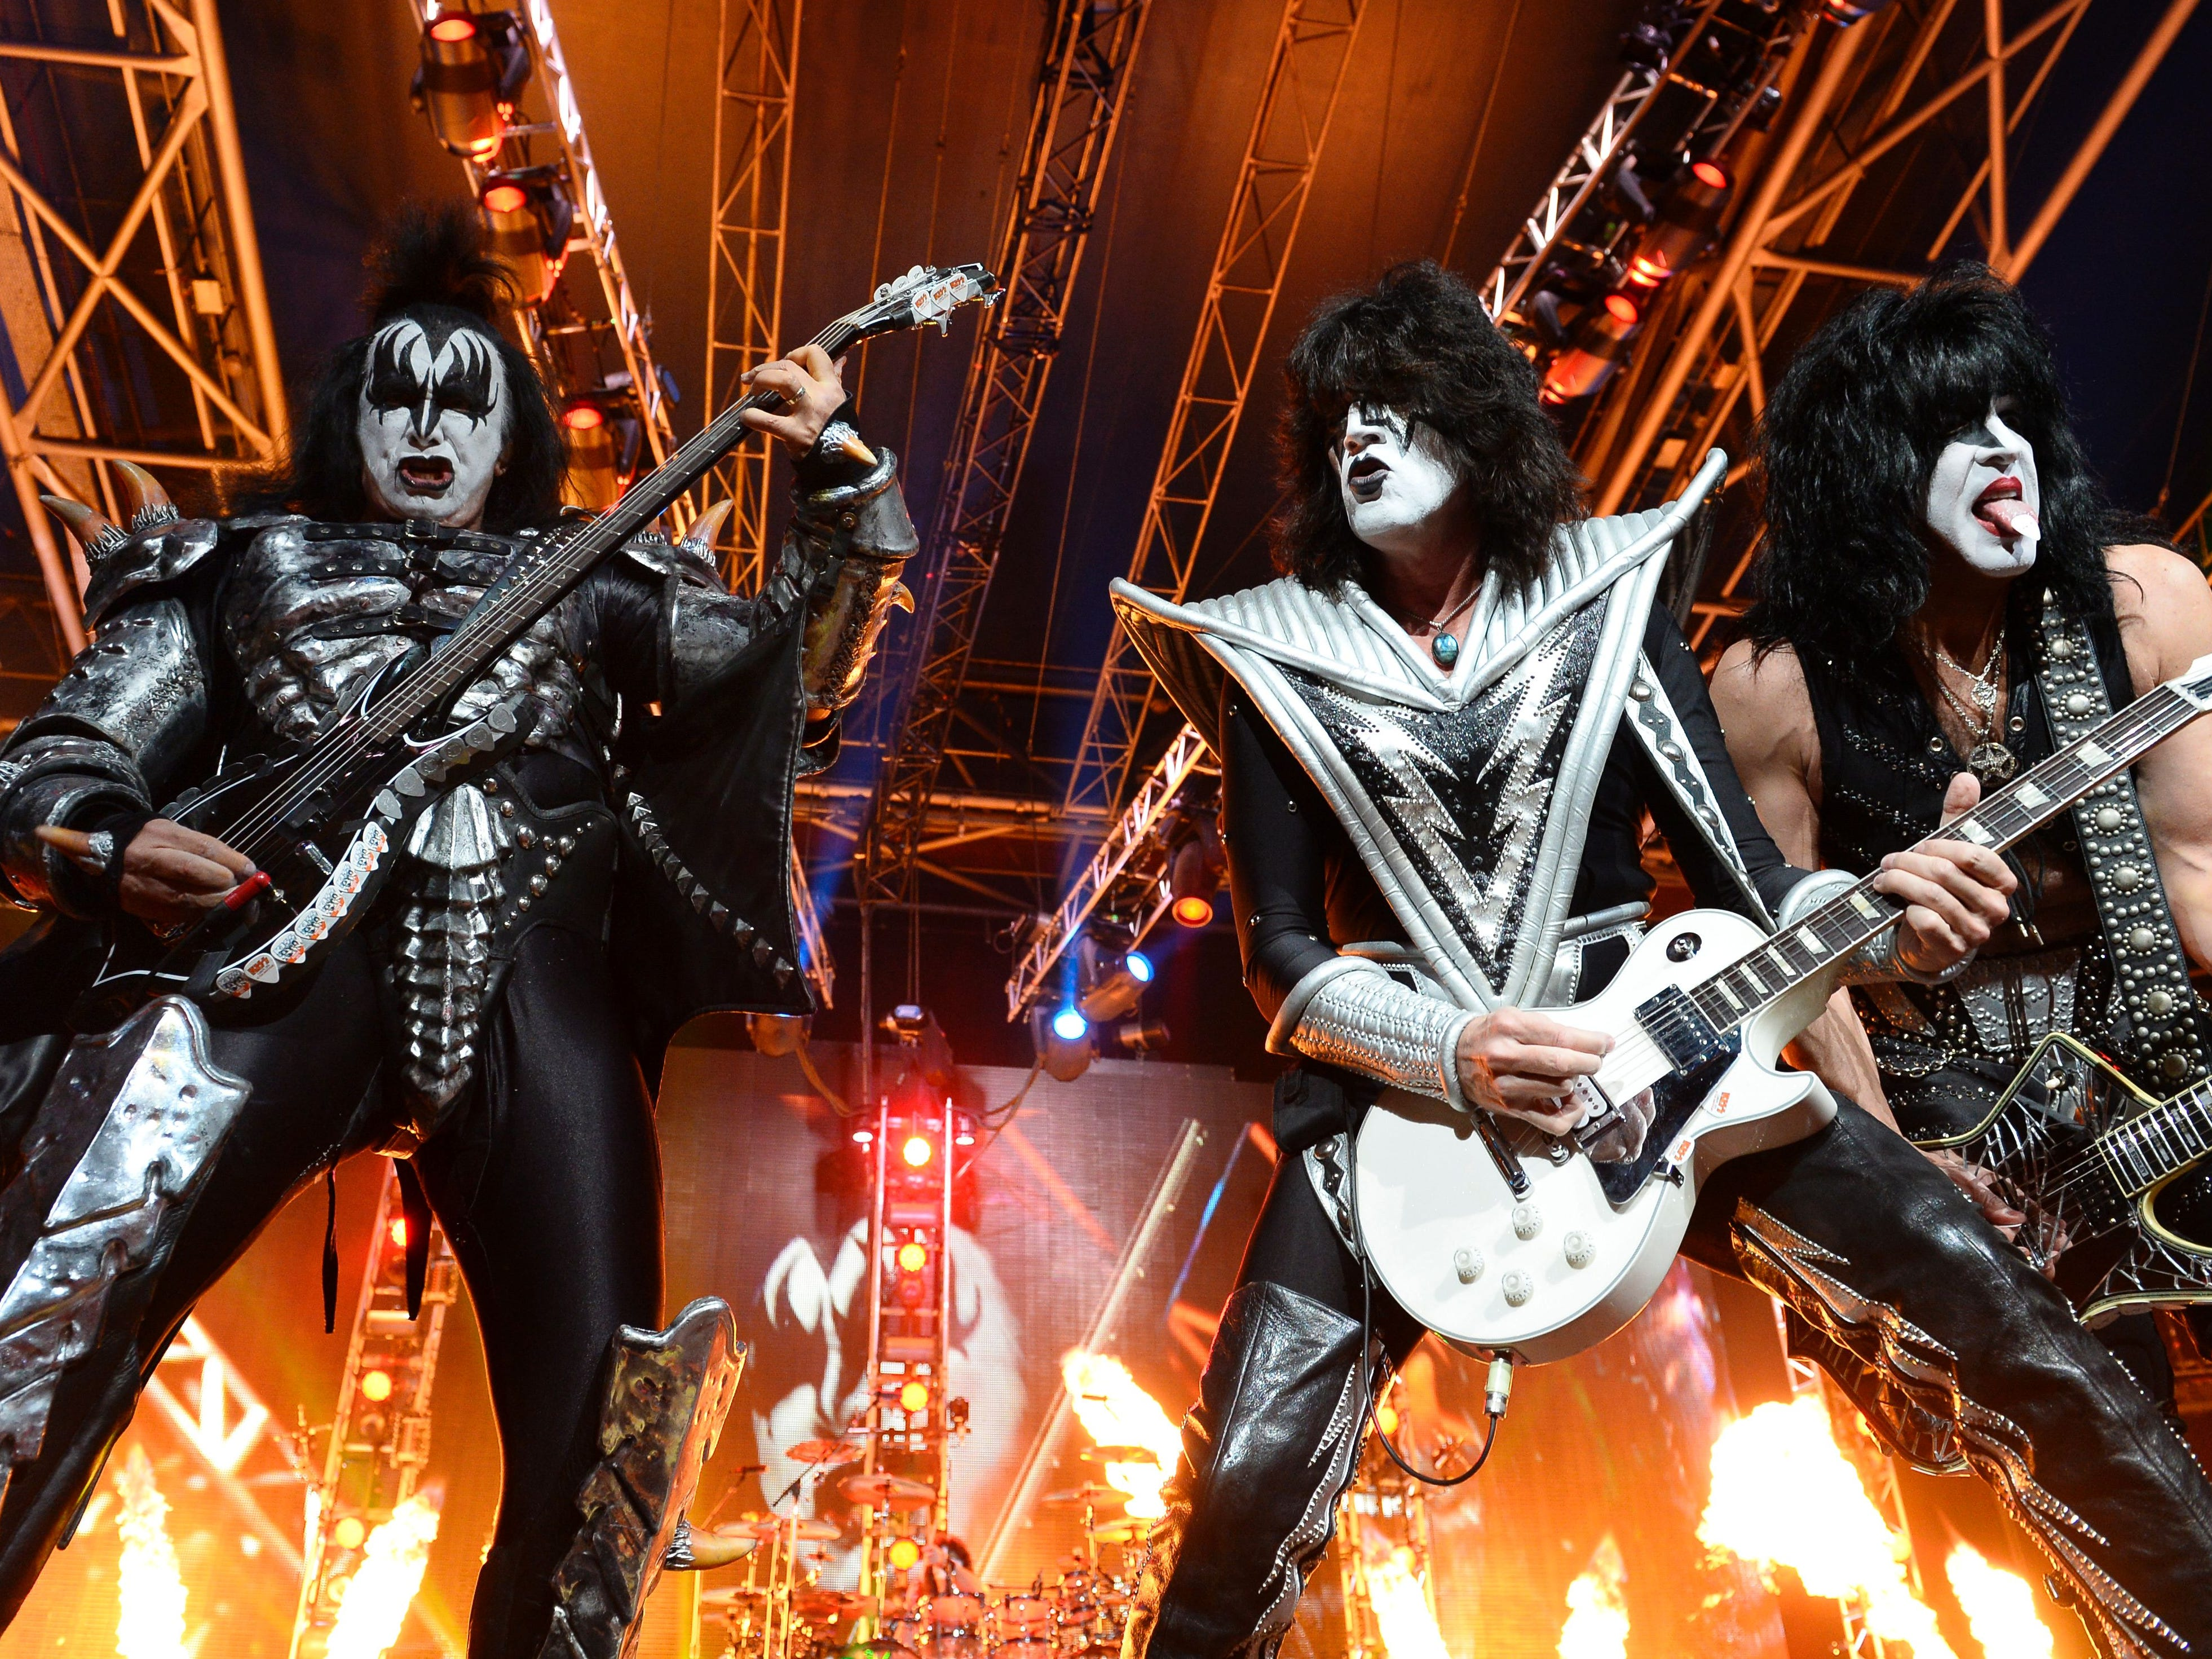 Bass guitarist Gene Simmons (L), guitarist Tommy Thayer (C) and singer and guitarist Paul Stanley (R) of US rock band Kiss perform on stage at the Zenith in Paris on June 16, 2015/AFP PHOTO BERTRAND GUAY / AFP / BERTRAND GUAY        (Photo credit should read BERTRAND GUAY/AFP/Getty Images)